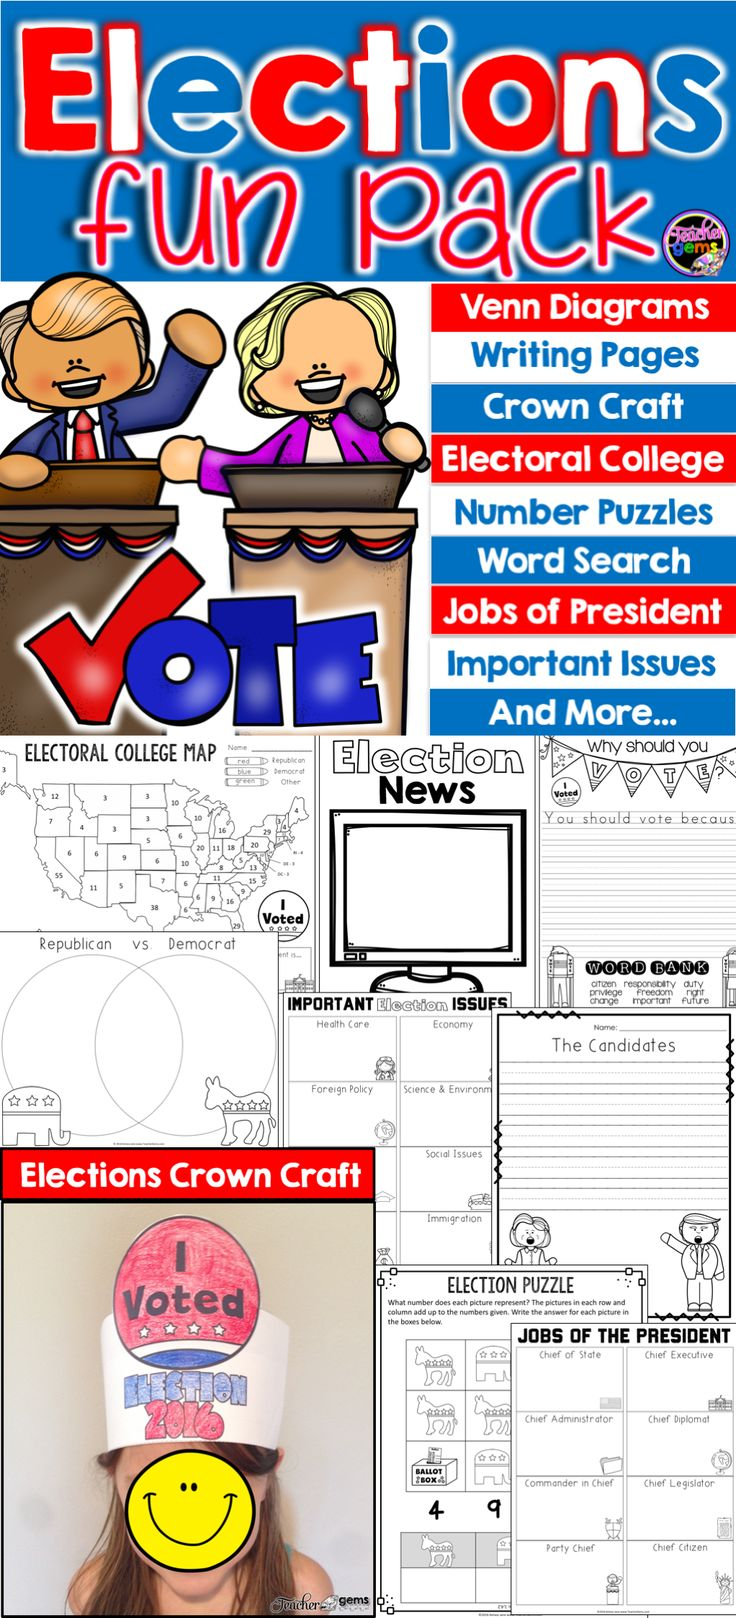 Drawing diagrams in pages - Elections Fun Pack Venn Diagrams Writing Pages Electoral College And More